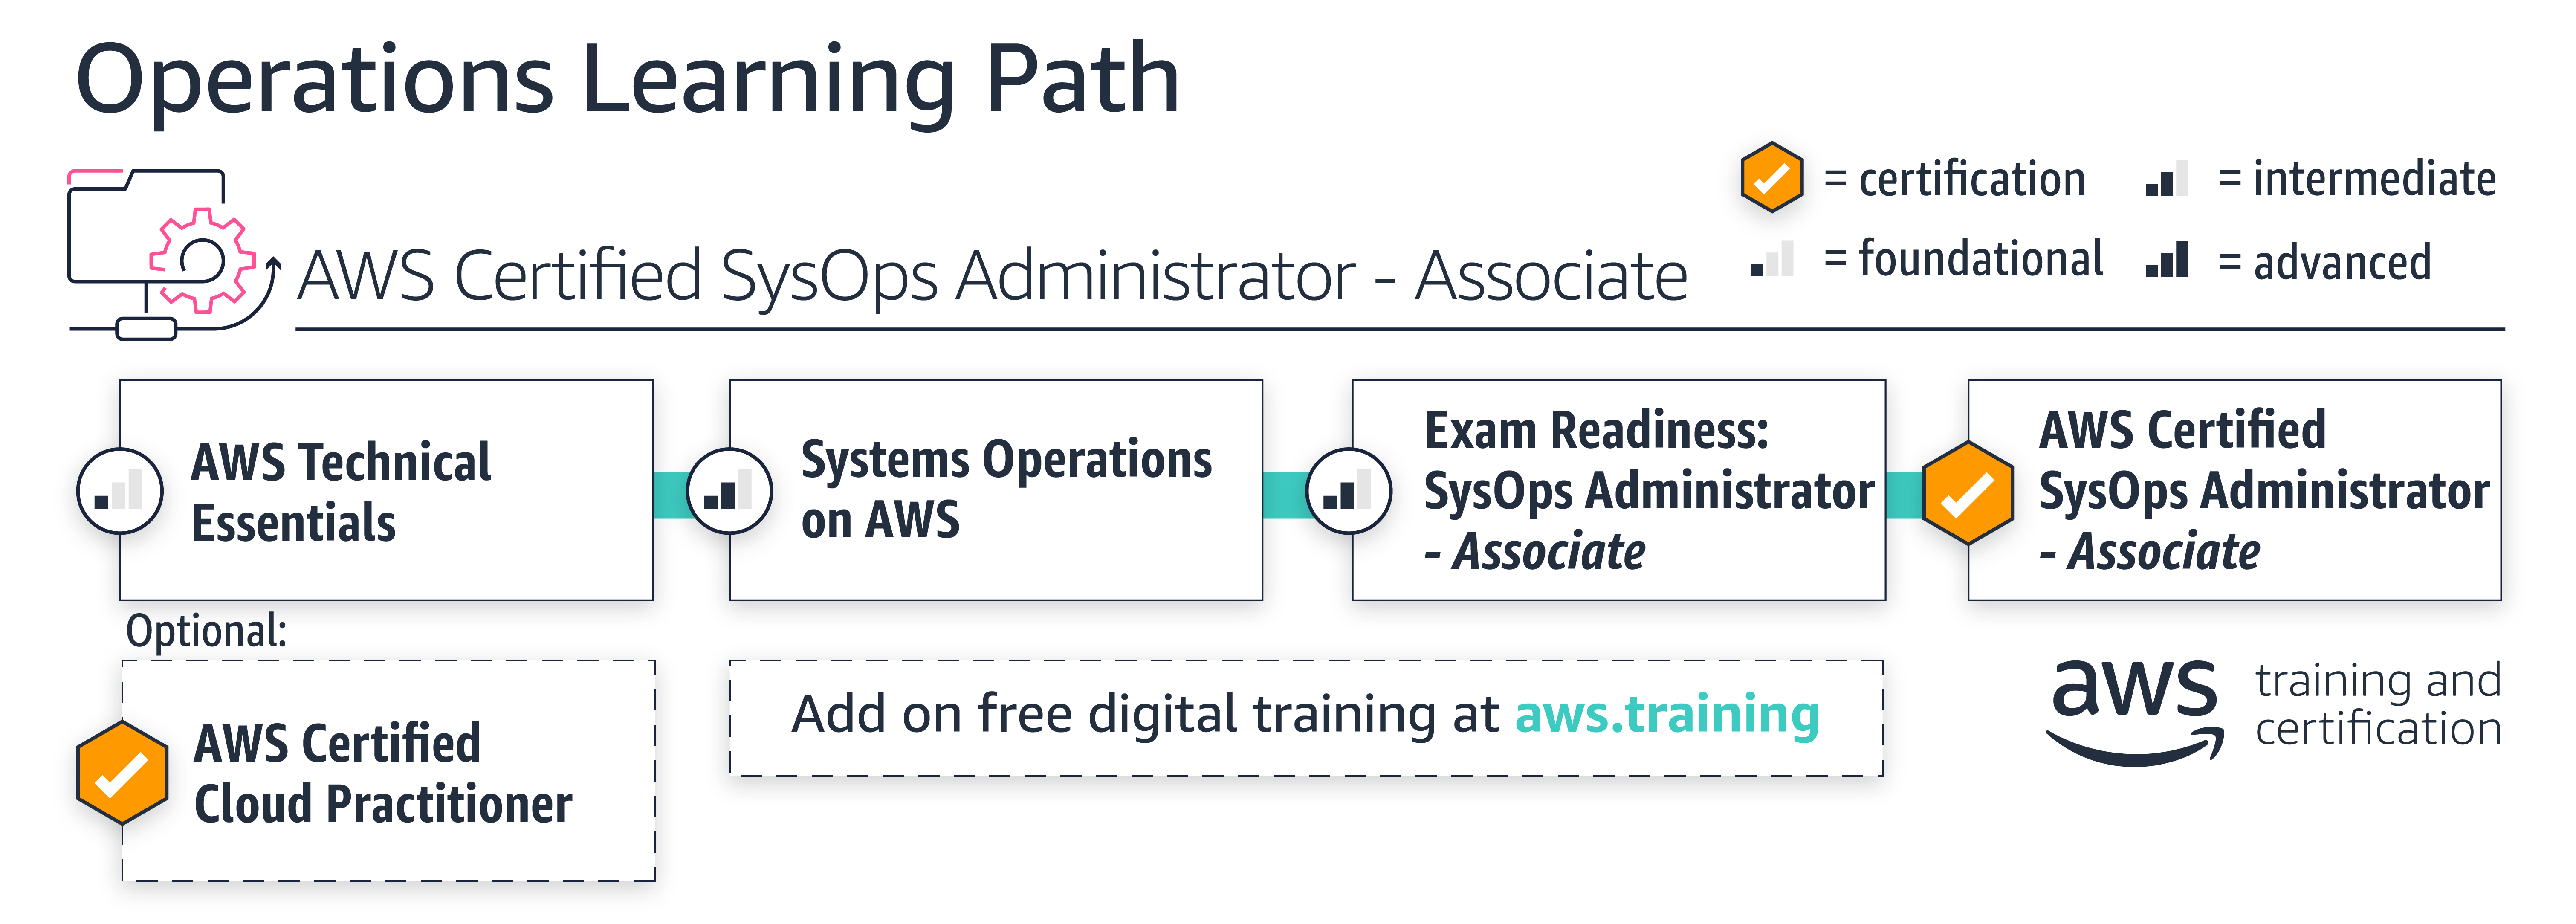 learning-paths_operations